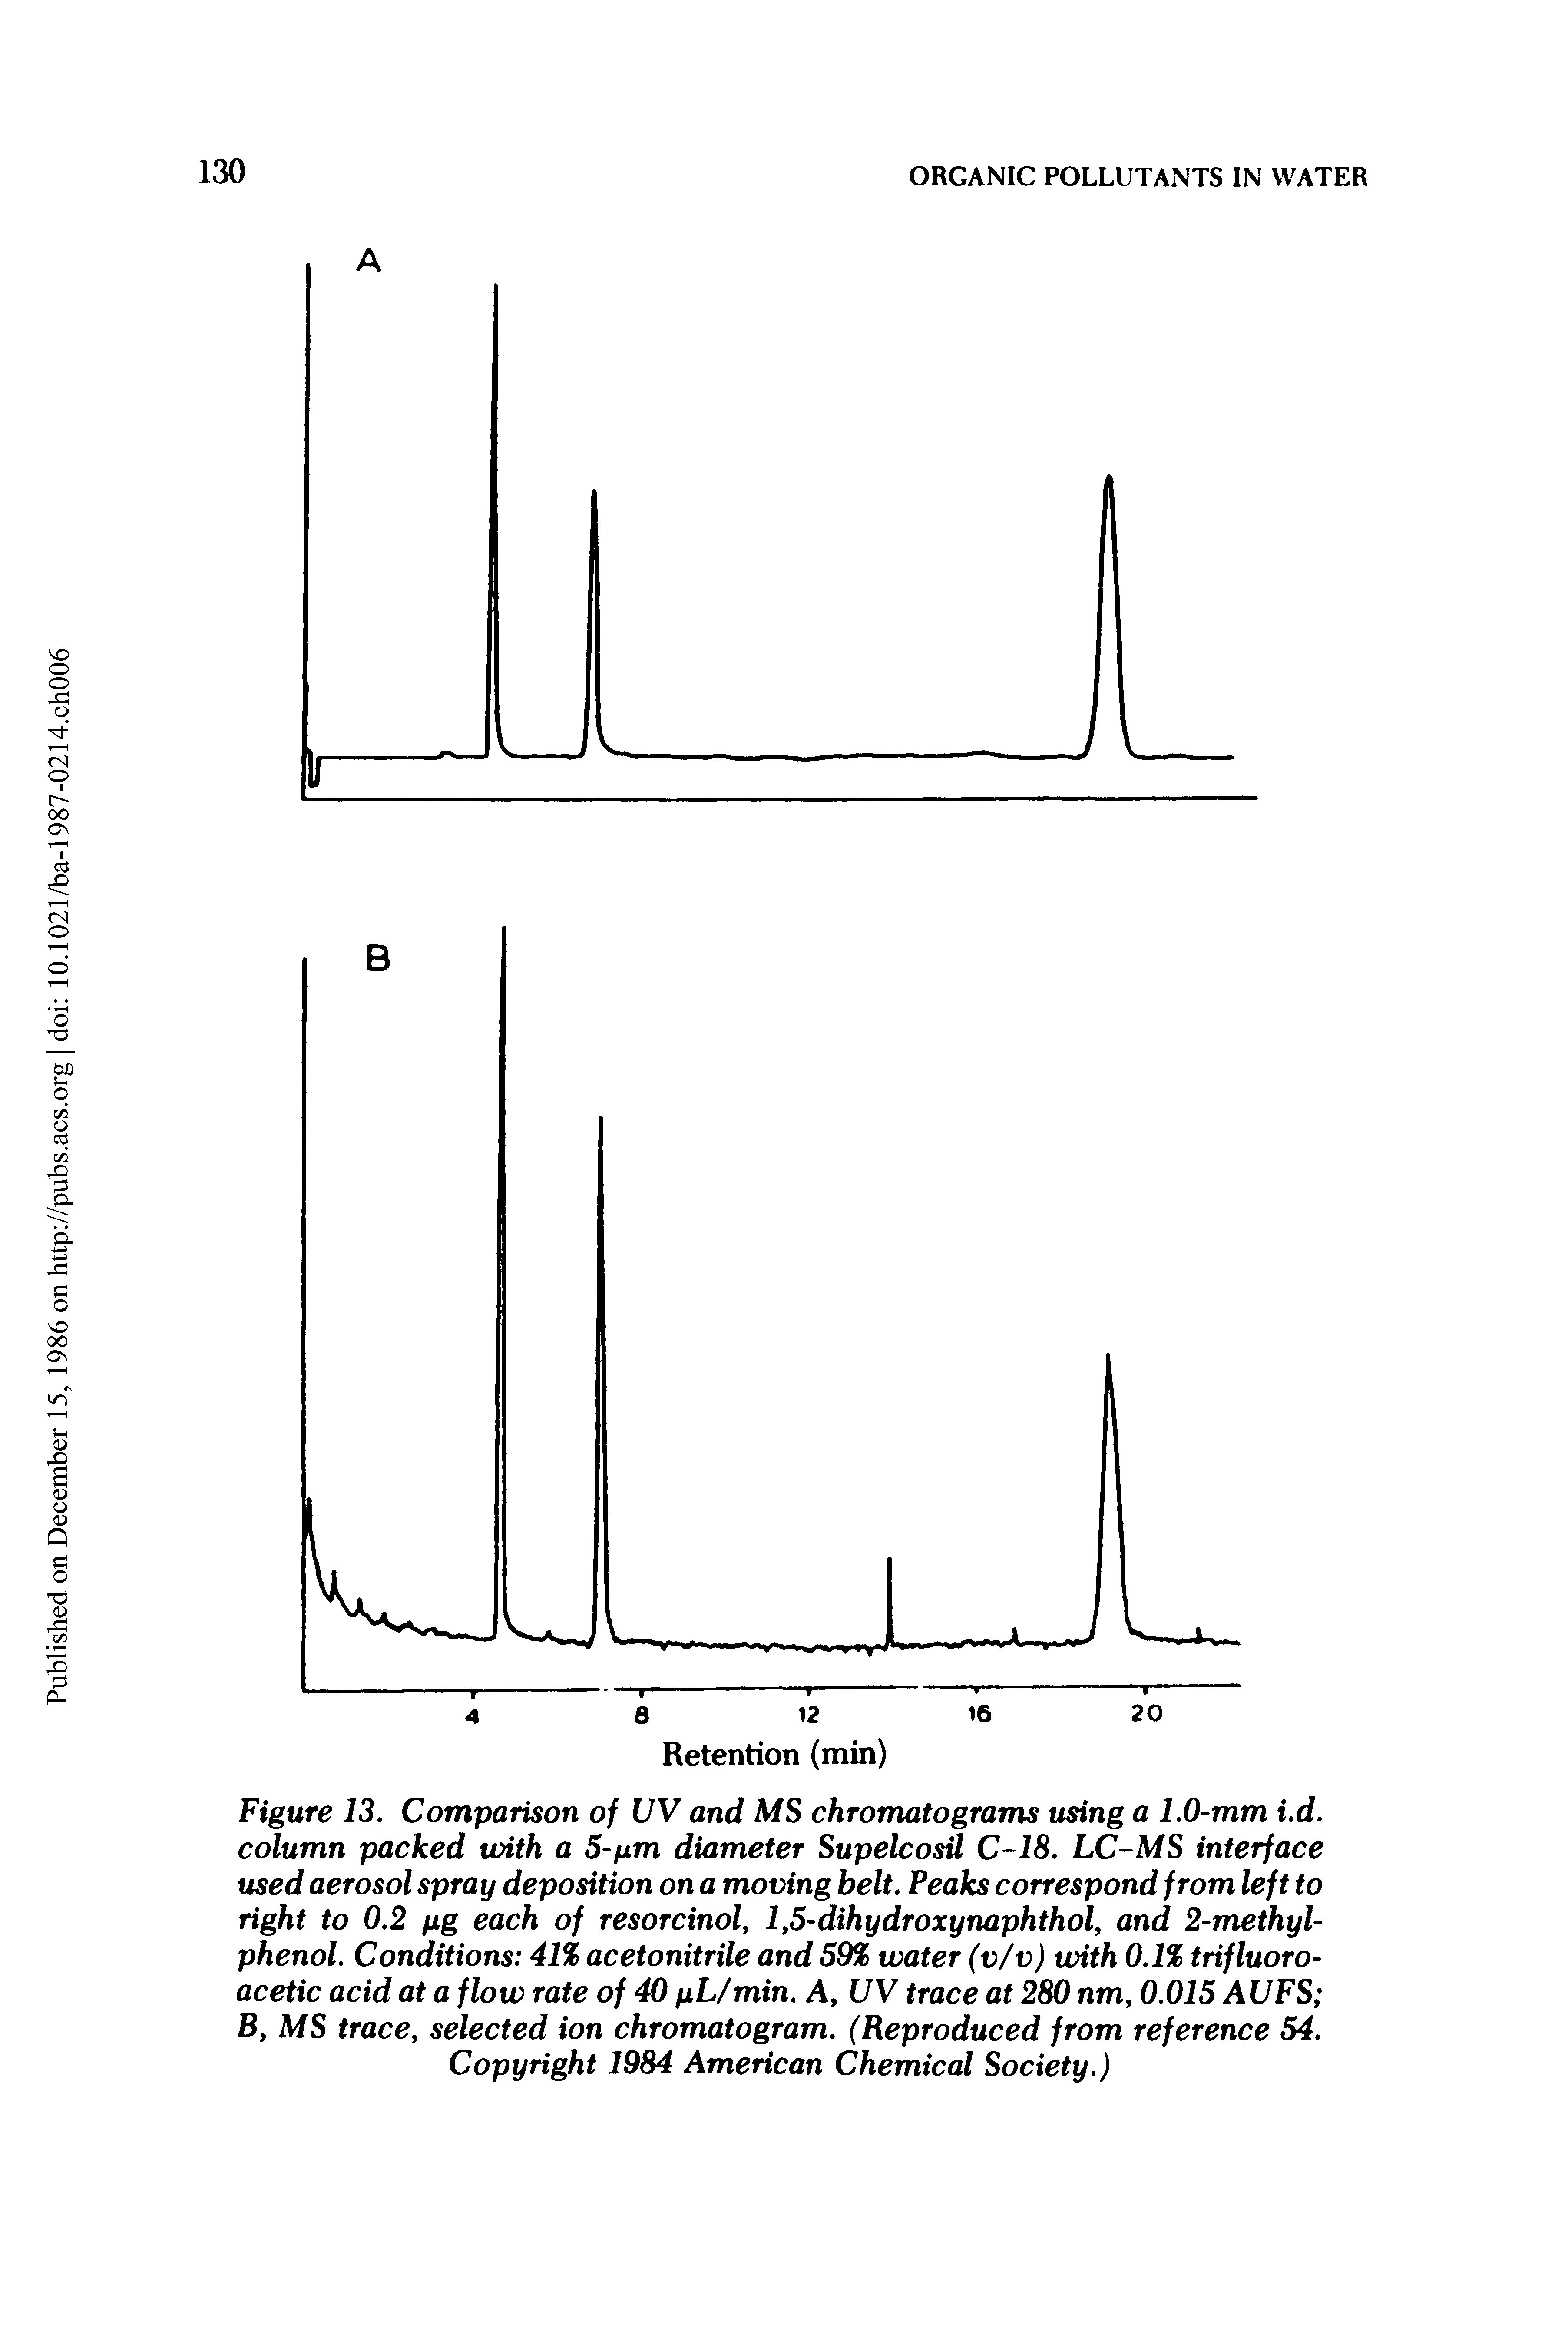 Figure 13. Comparison of UV and MS chromatograms using a 1.0-mm i.d. column packed with a 5-pm diameter Supelcosil C-18. LC-MS interface used aerosol spray deposition on a moving belt. Peaks correspond from left to right to 0.2 pg each of resorcinol, 1,5-dihydroxynaphthol, and 2-methyl-phenol. Conditions 41% acetonitrile and 59% water (v/v) with 0.1% trifluoro-acetic acid at a flow rate of 40 pL/min. A, UV trace at 280 nm, 0.015 AUFS B, MS trace, selected ion chromatogram. (Reproduced from reference 54.